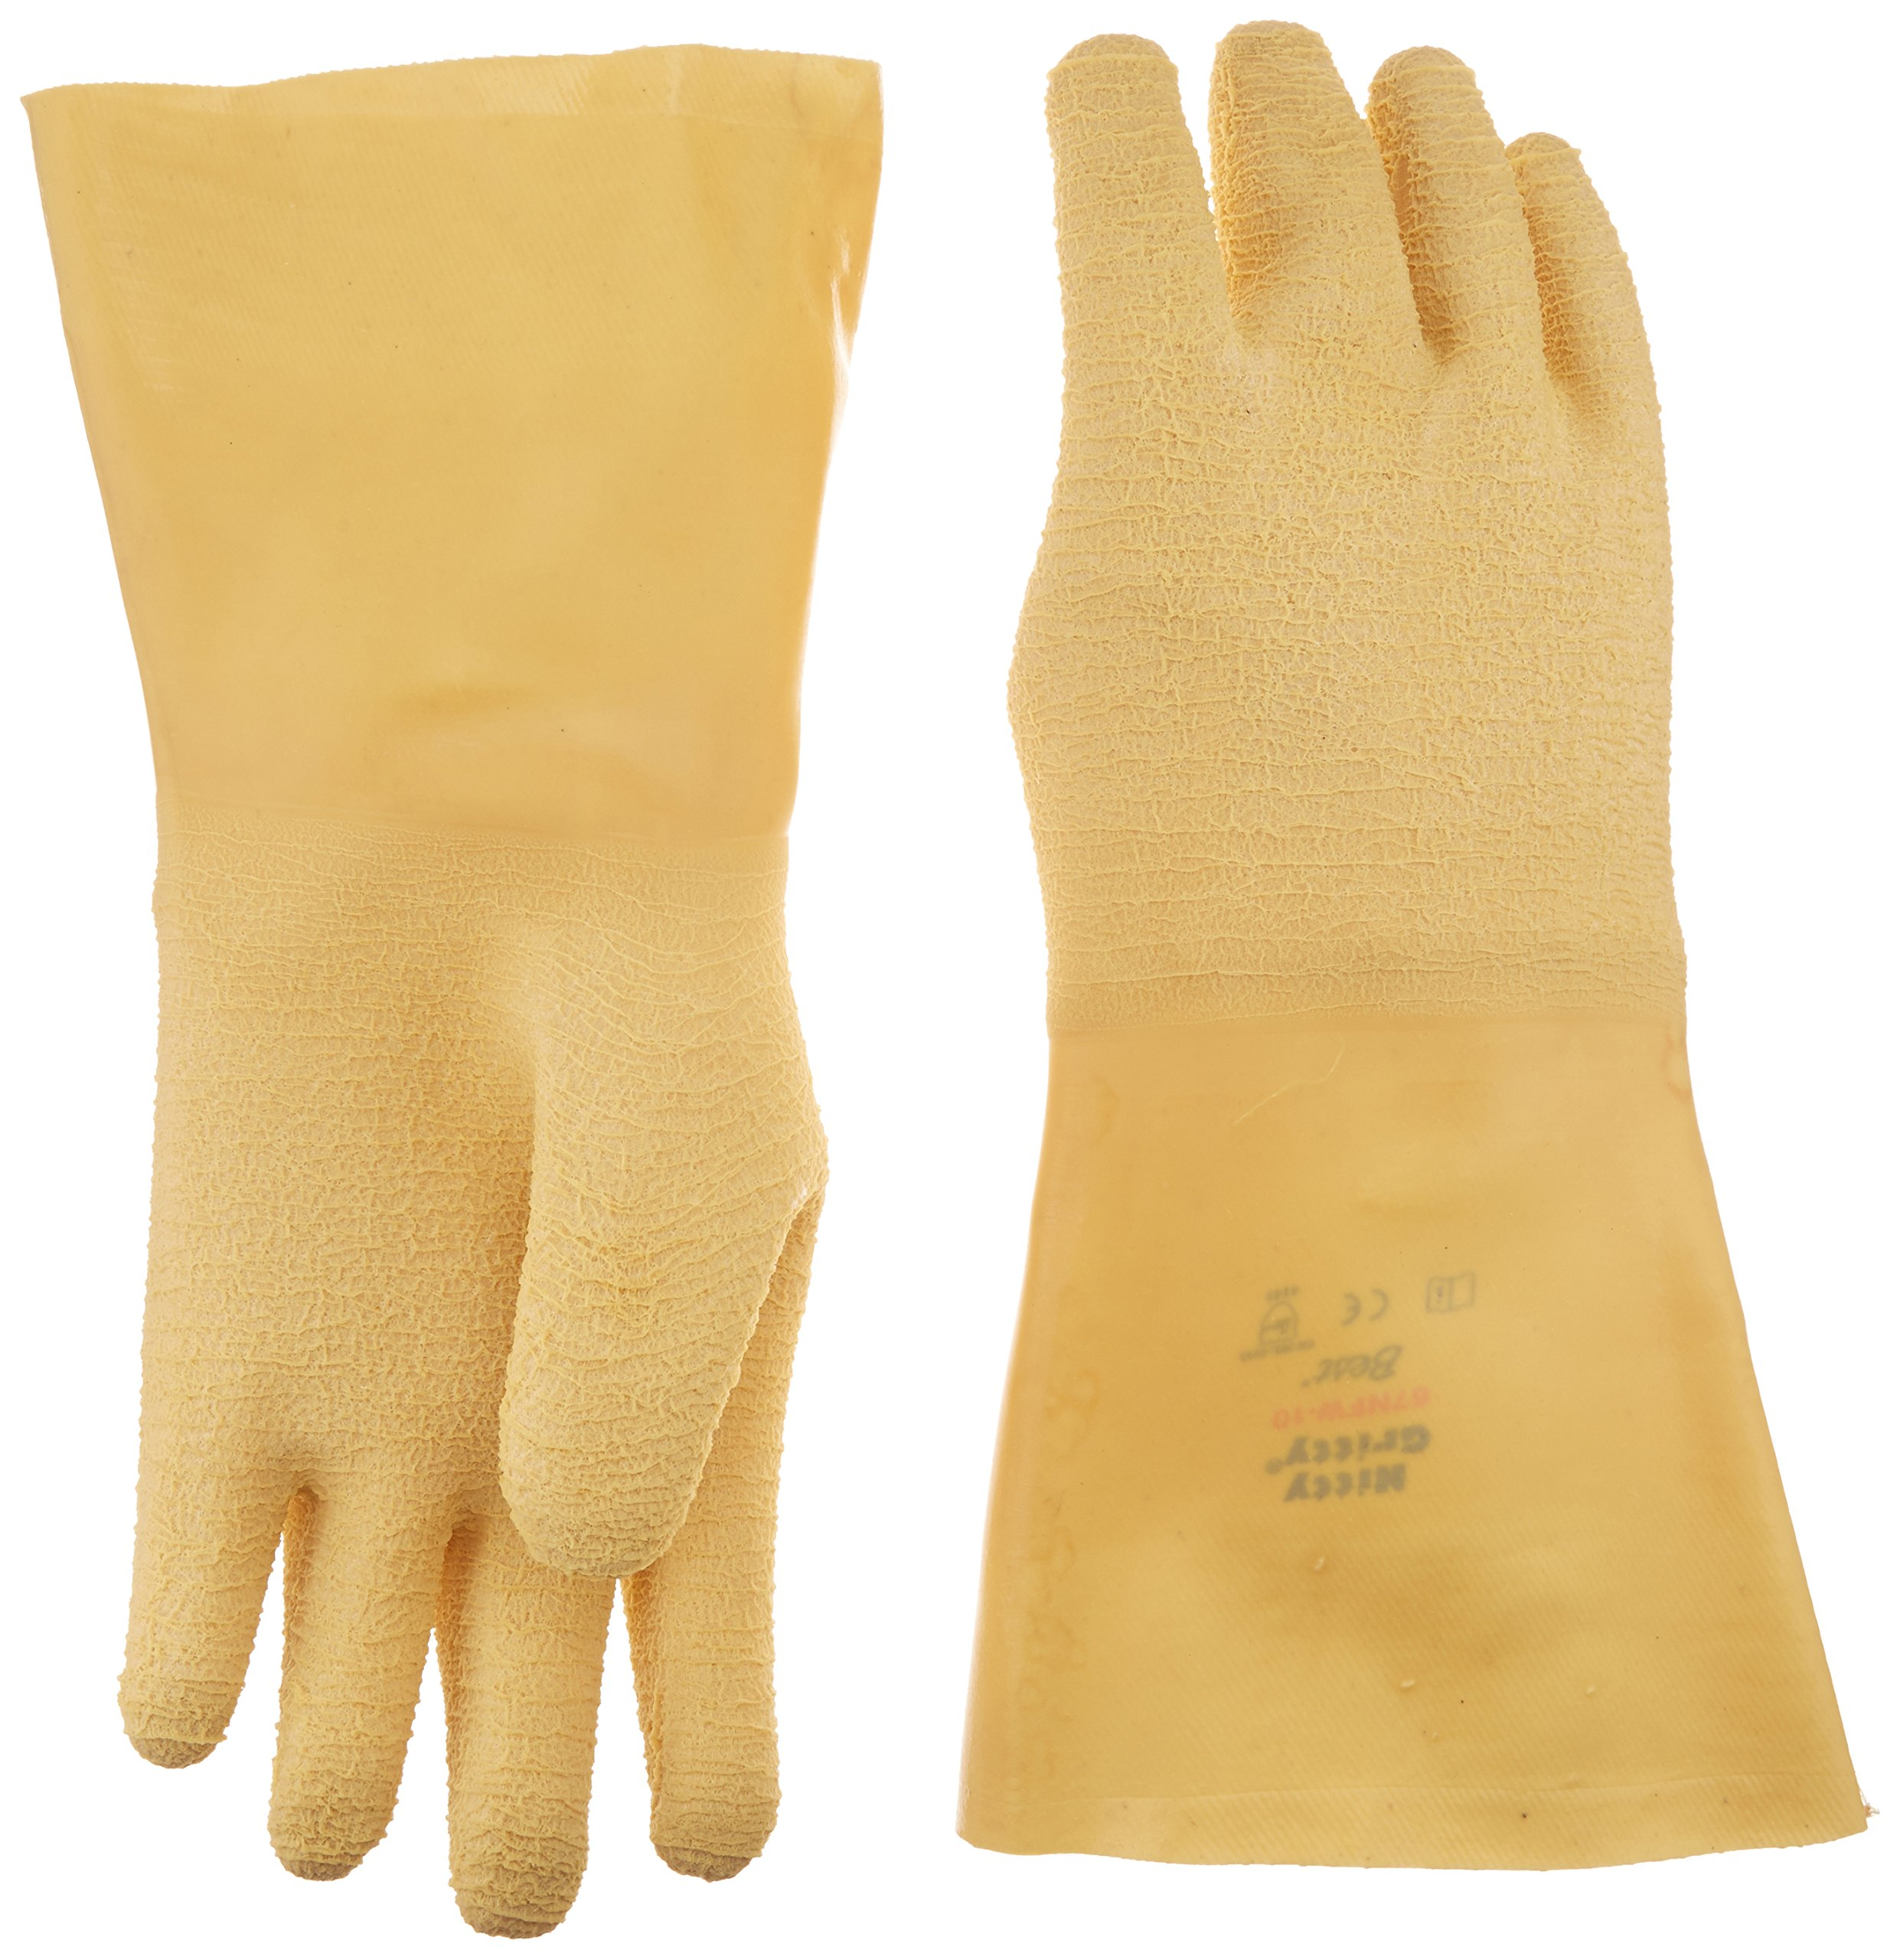 Best Glove 67NFW-10 Original Nitty Gritty Gloves, 14'' Length, Large, Yellow (Pack of 36)